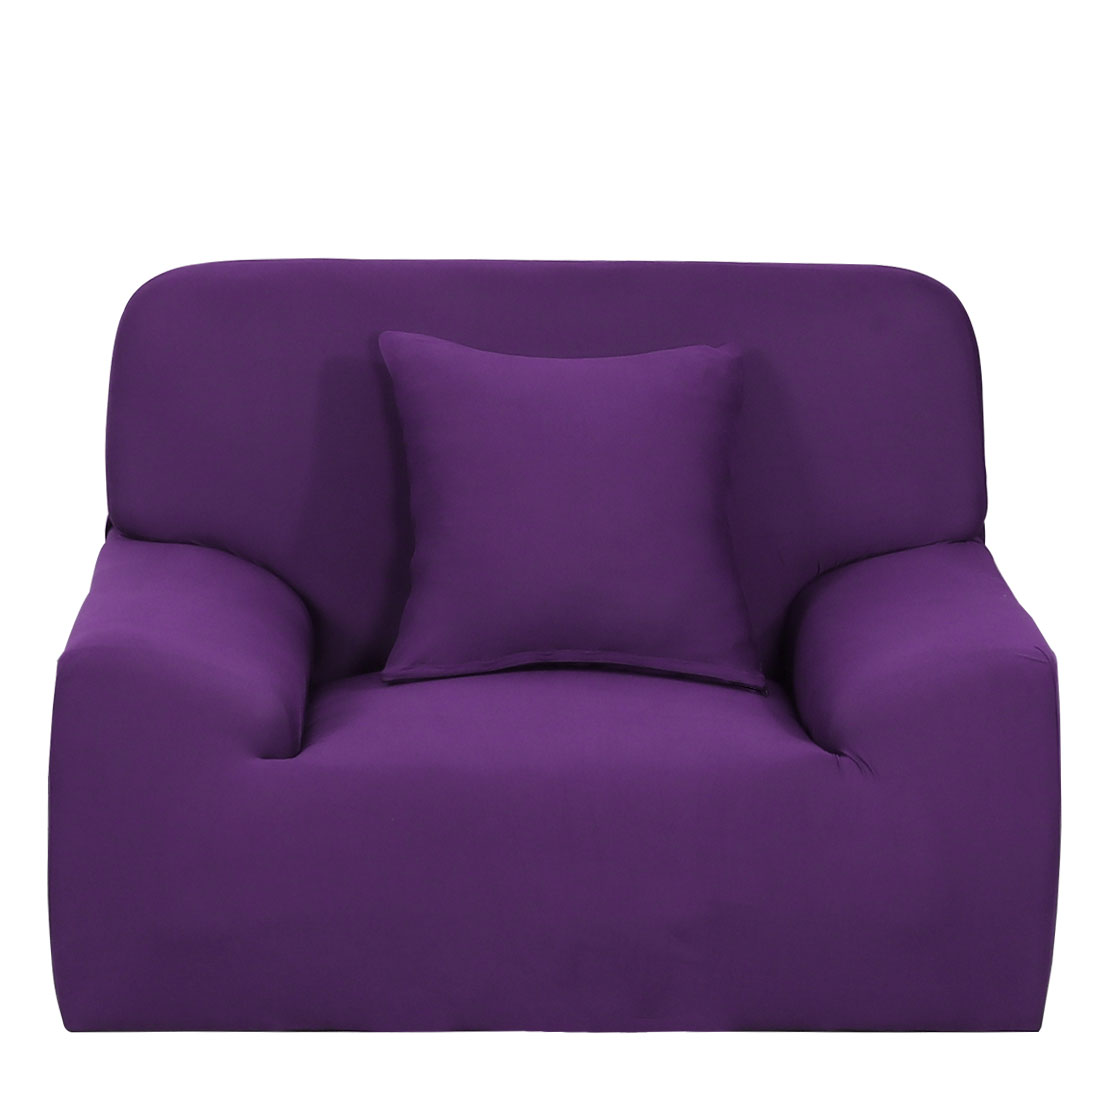 Stretch 1/2/3 Seats Chair Loveseat Couch Cover Sofa Slipcovers Purple